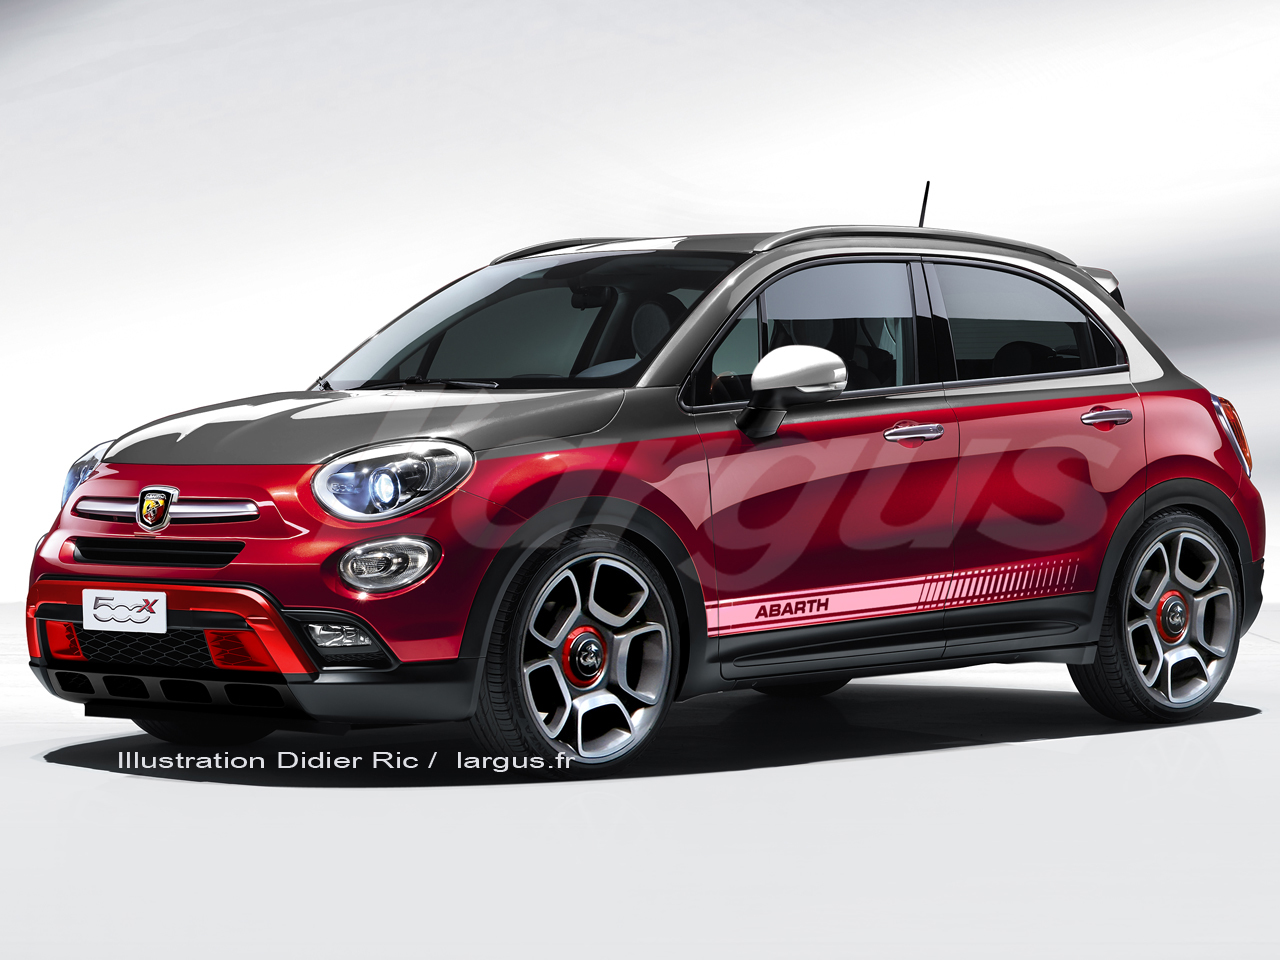 fiat 500x un restylage et deux visages au mondial de l 39 auto 2018 photo 3 l 39 argus. Black Bedroom Furniture Sets. Home Design Ideas